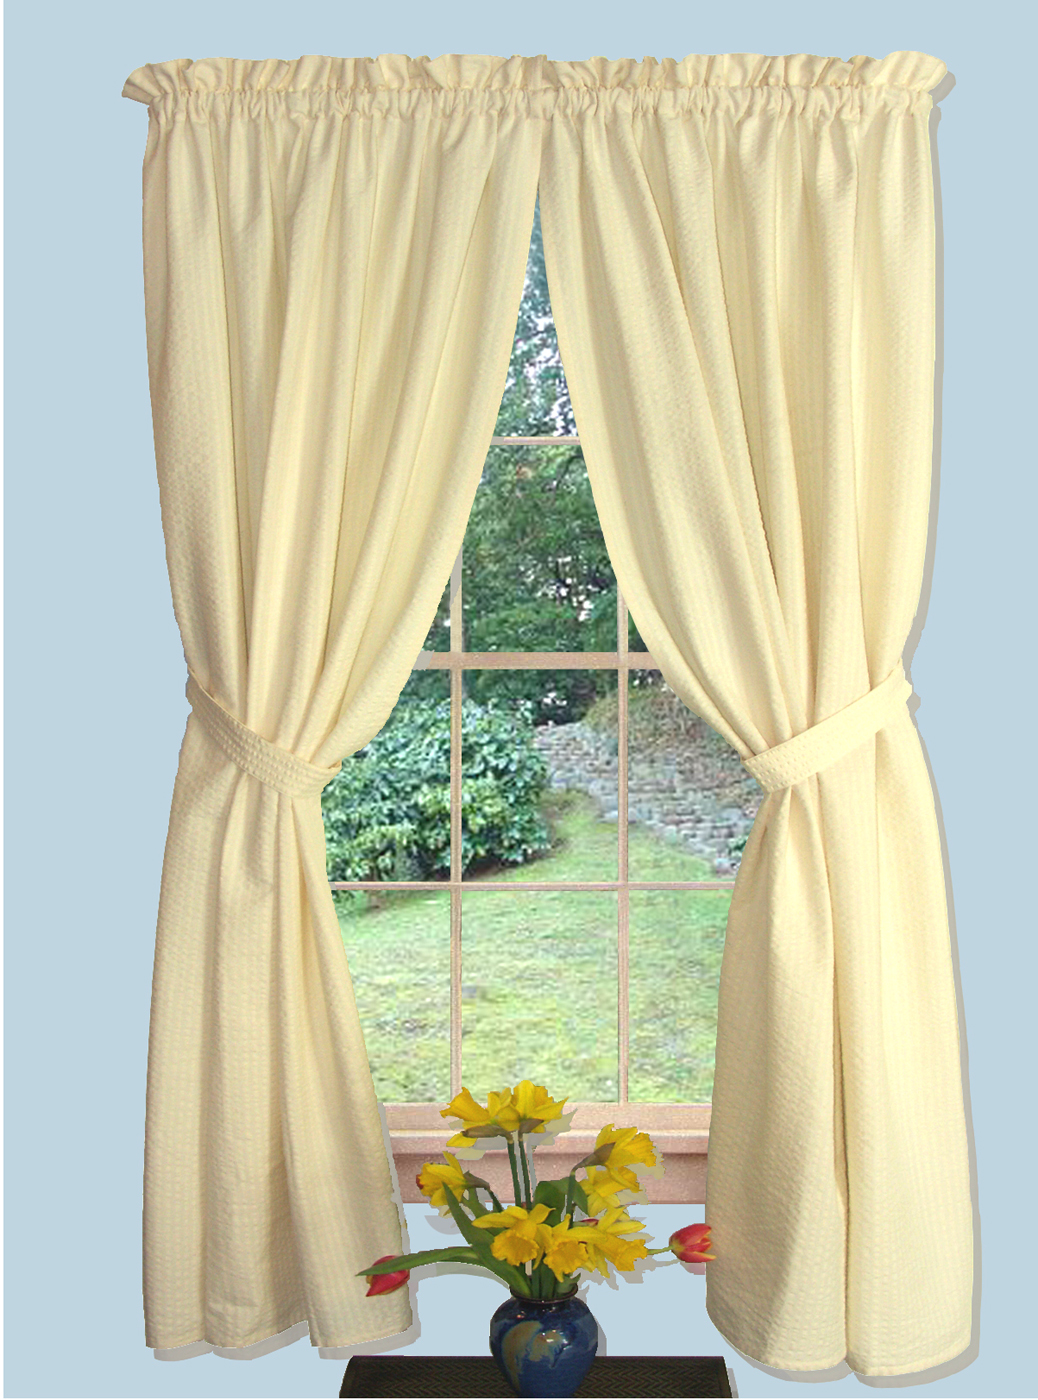 63 Curtains With Valance Home The Honoroak